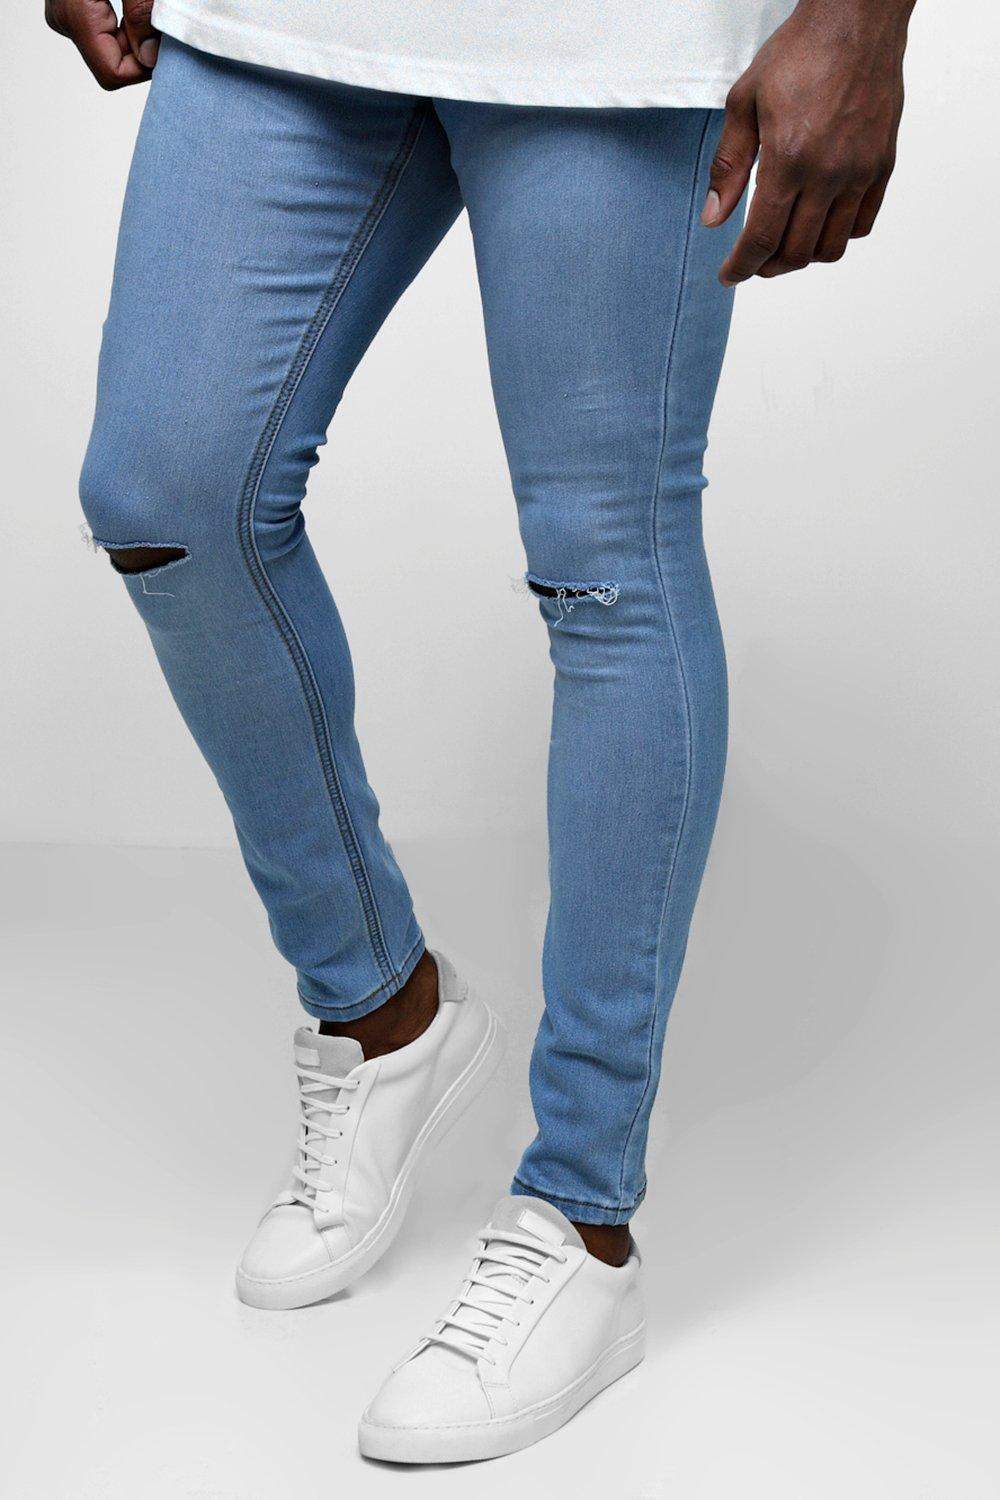 b8db197046b5 Boohoo Big And Tall Ripped Knee Skinny Fit Jeans in Blue for Men - Lyst